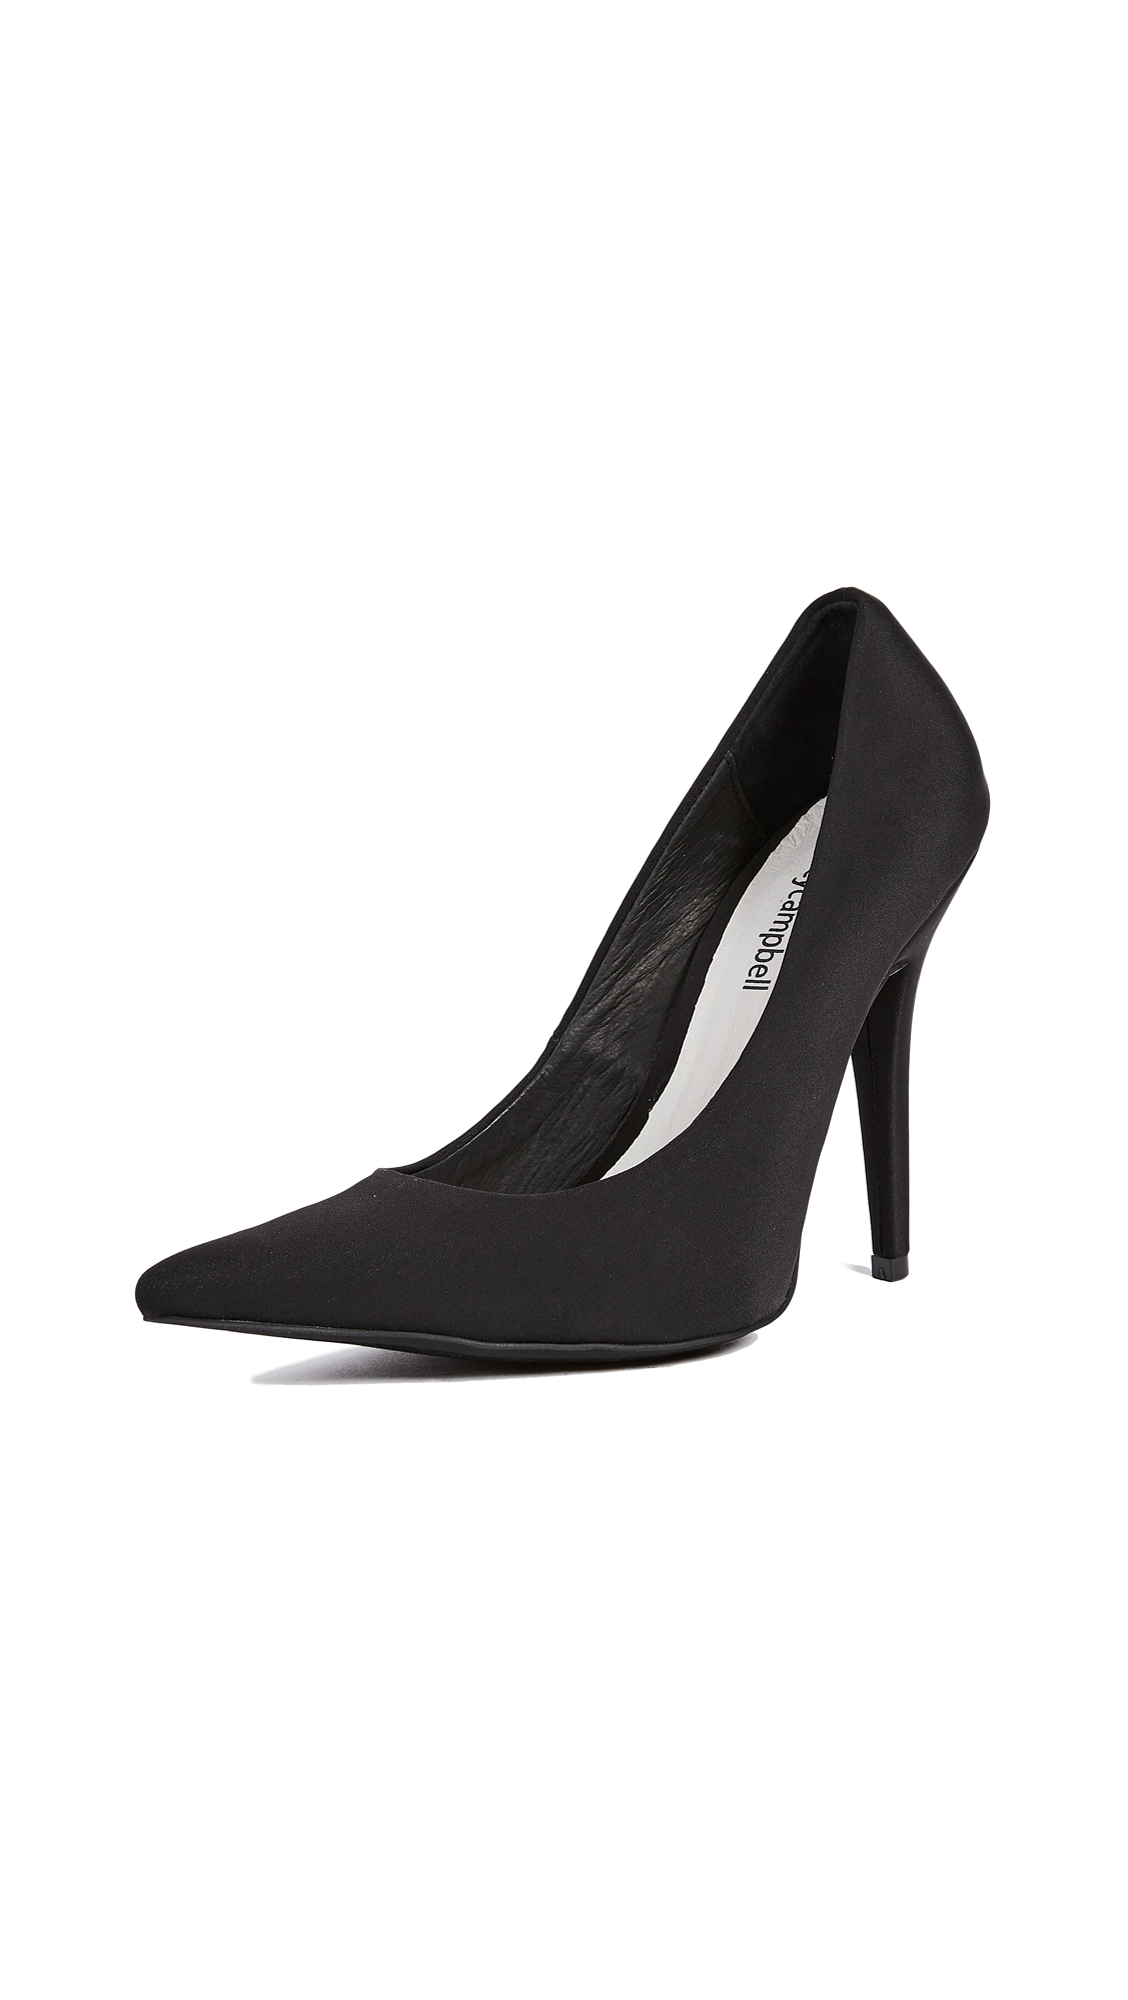 Jeffrey Campbell Ikon Point Toe Pumps - Black